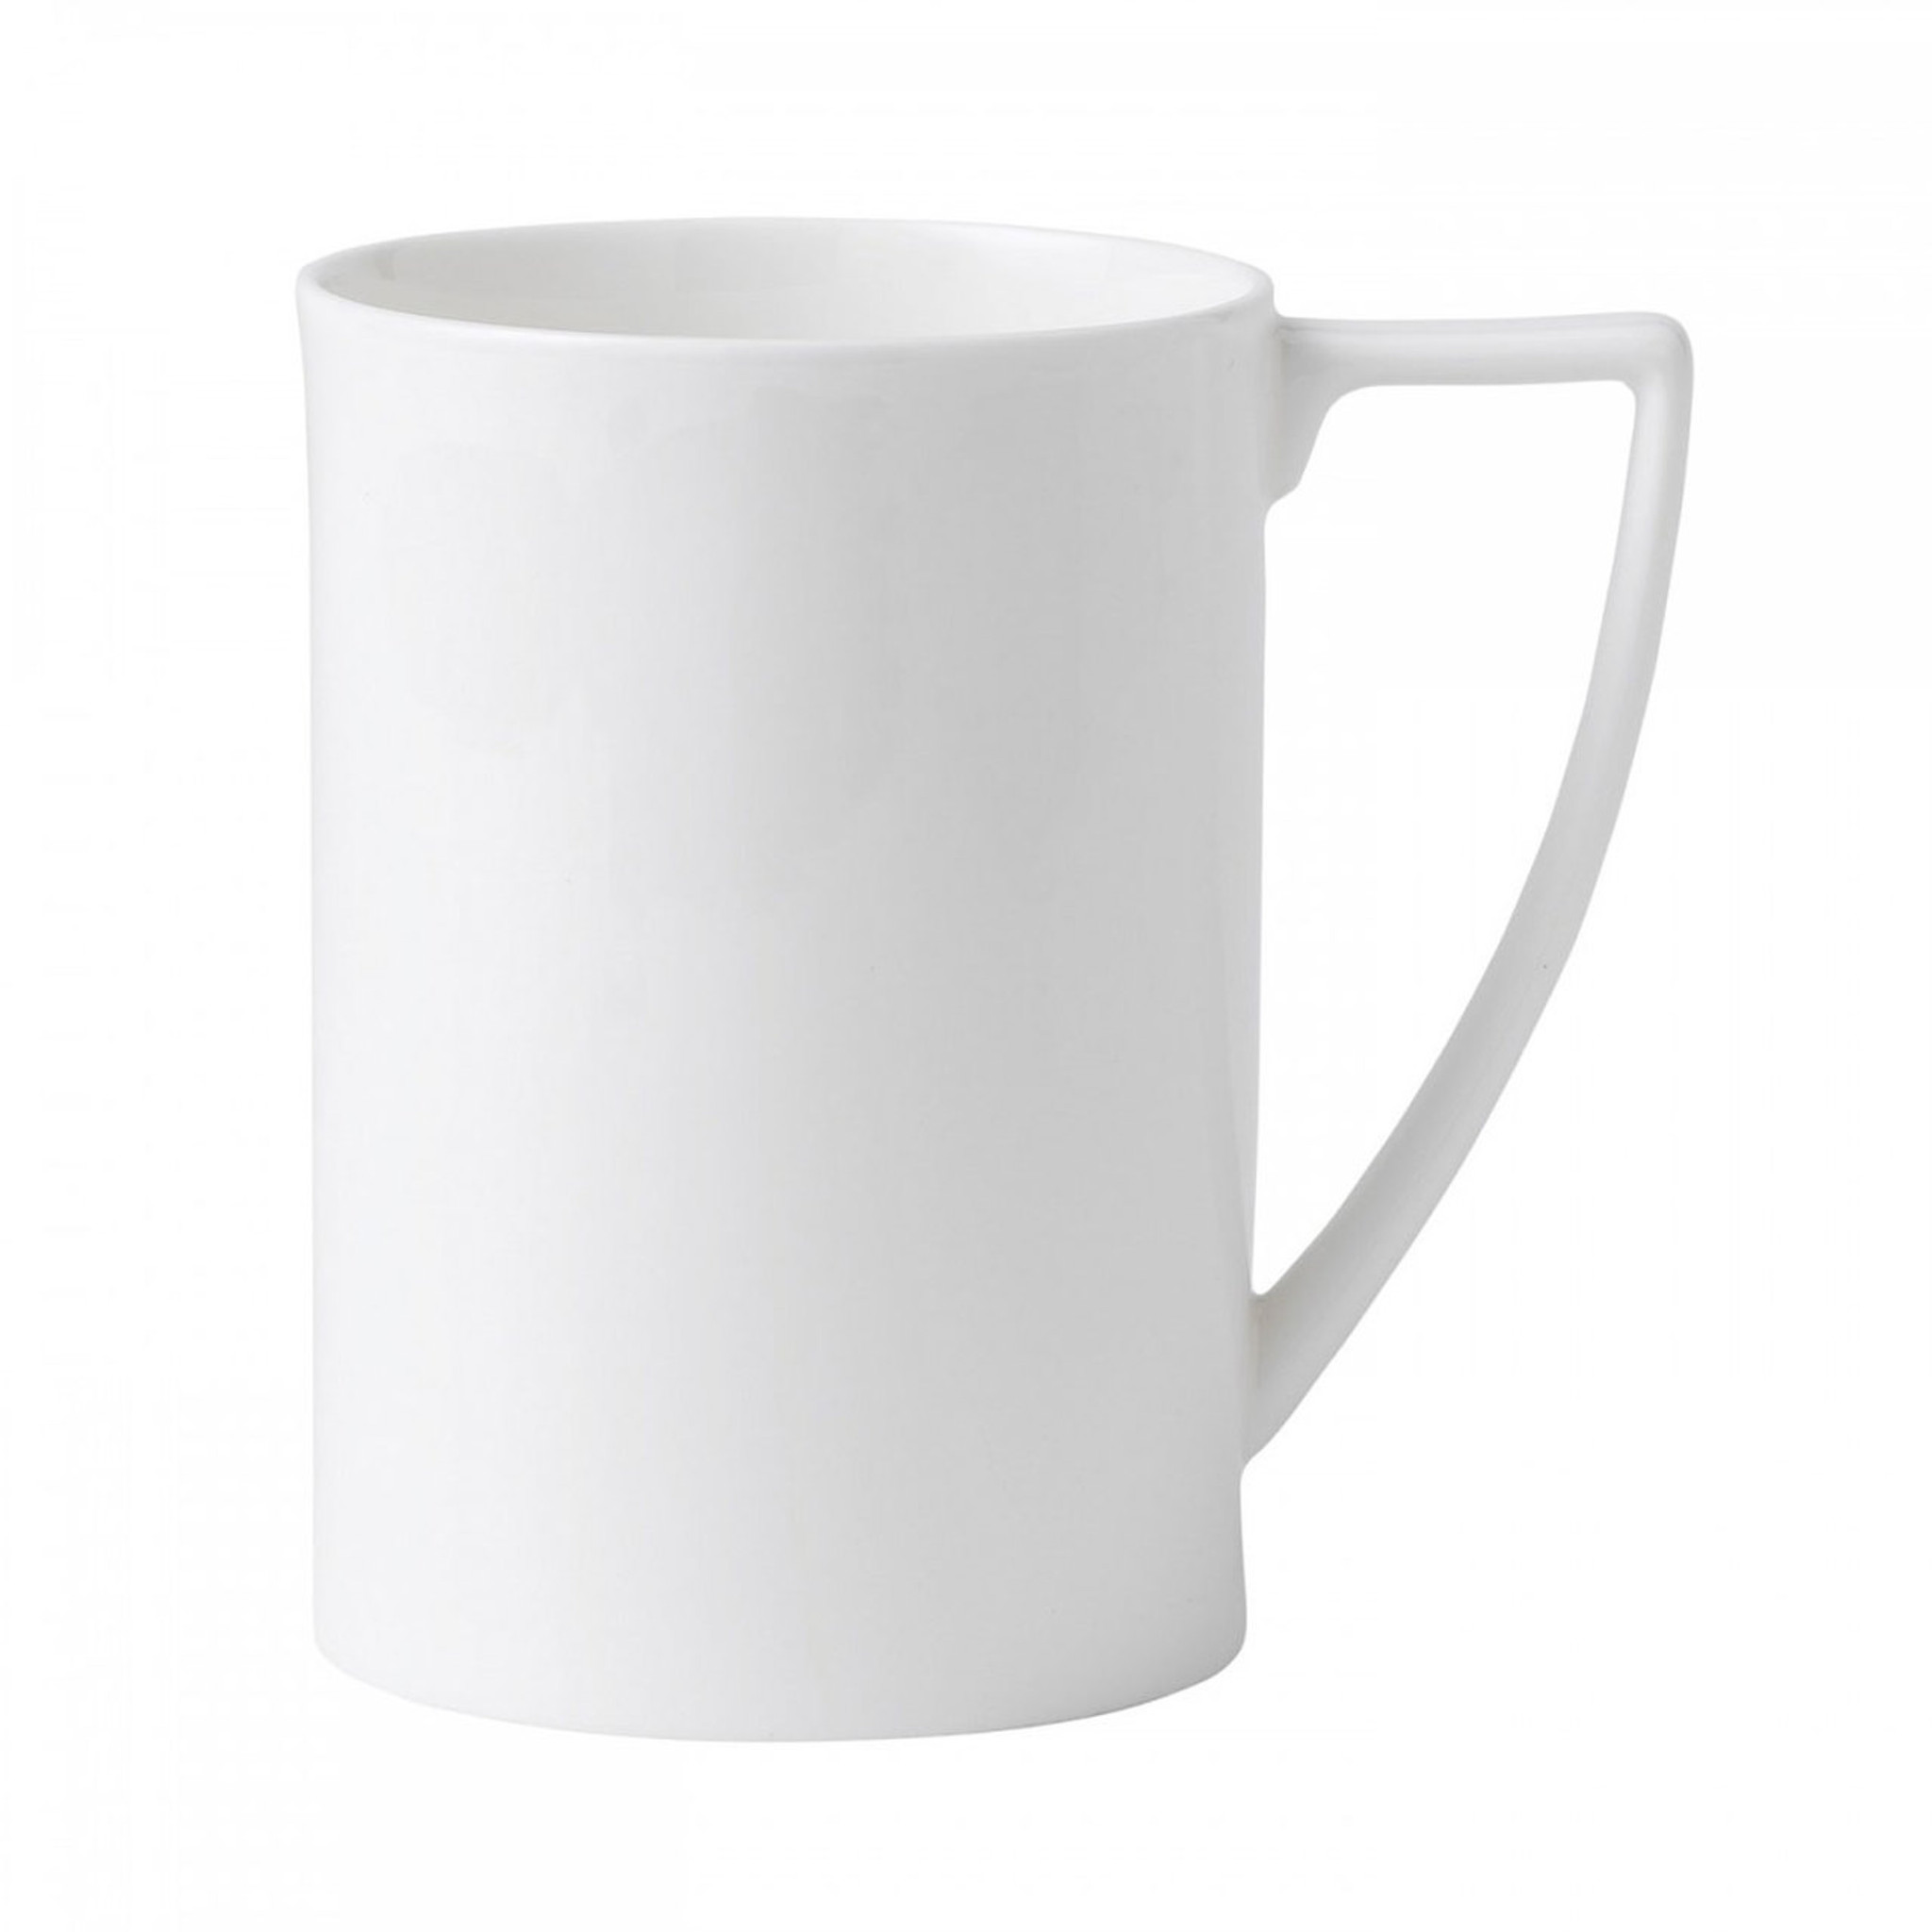 Wedgwood jasper conran white bone china mug pt mpn for Jasper conran shop